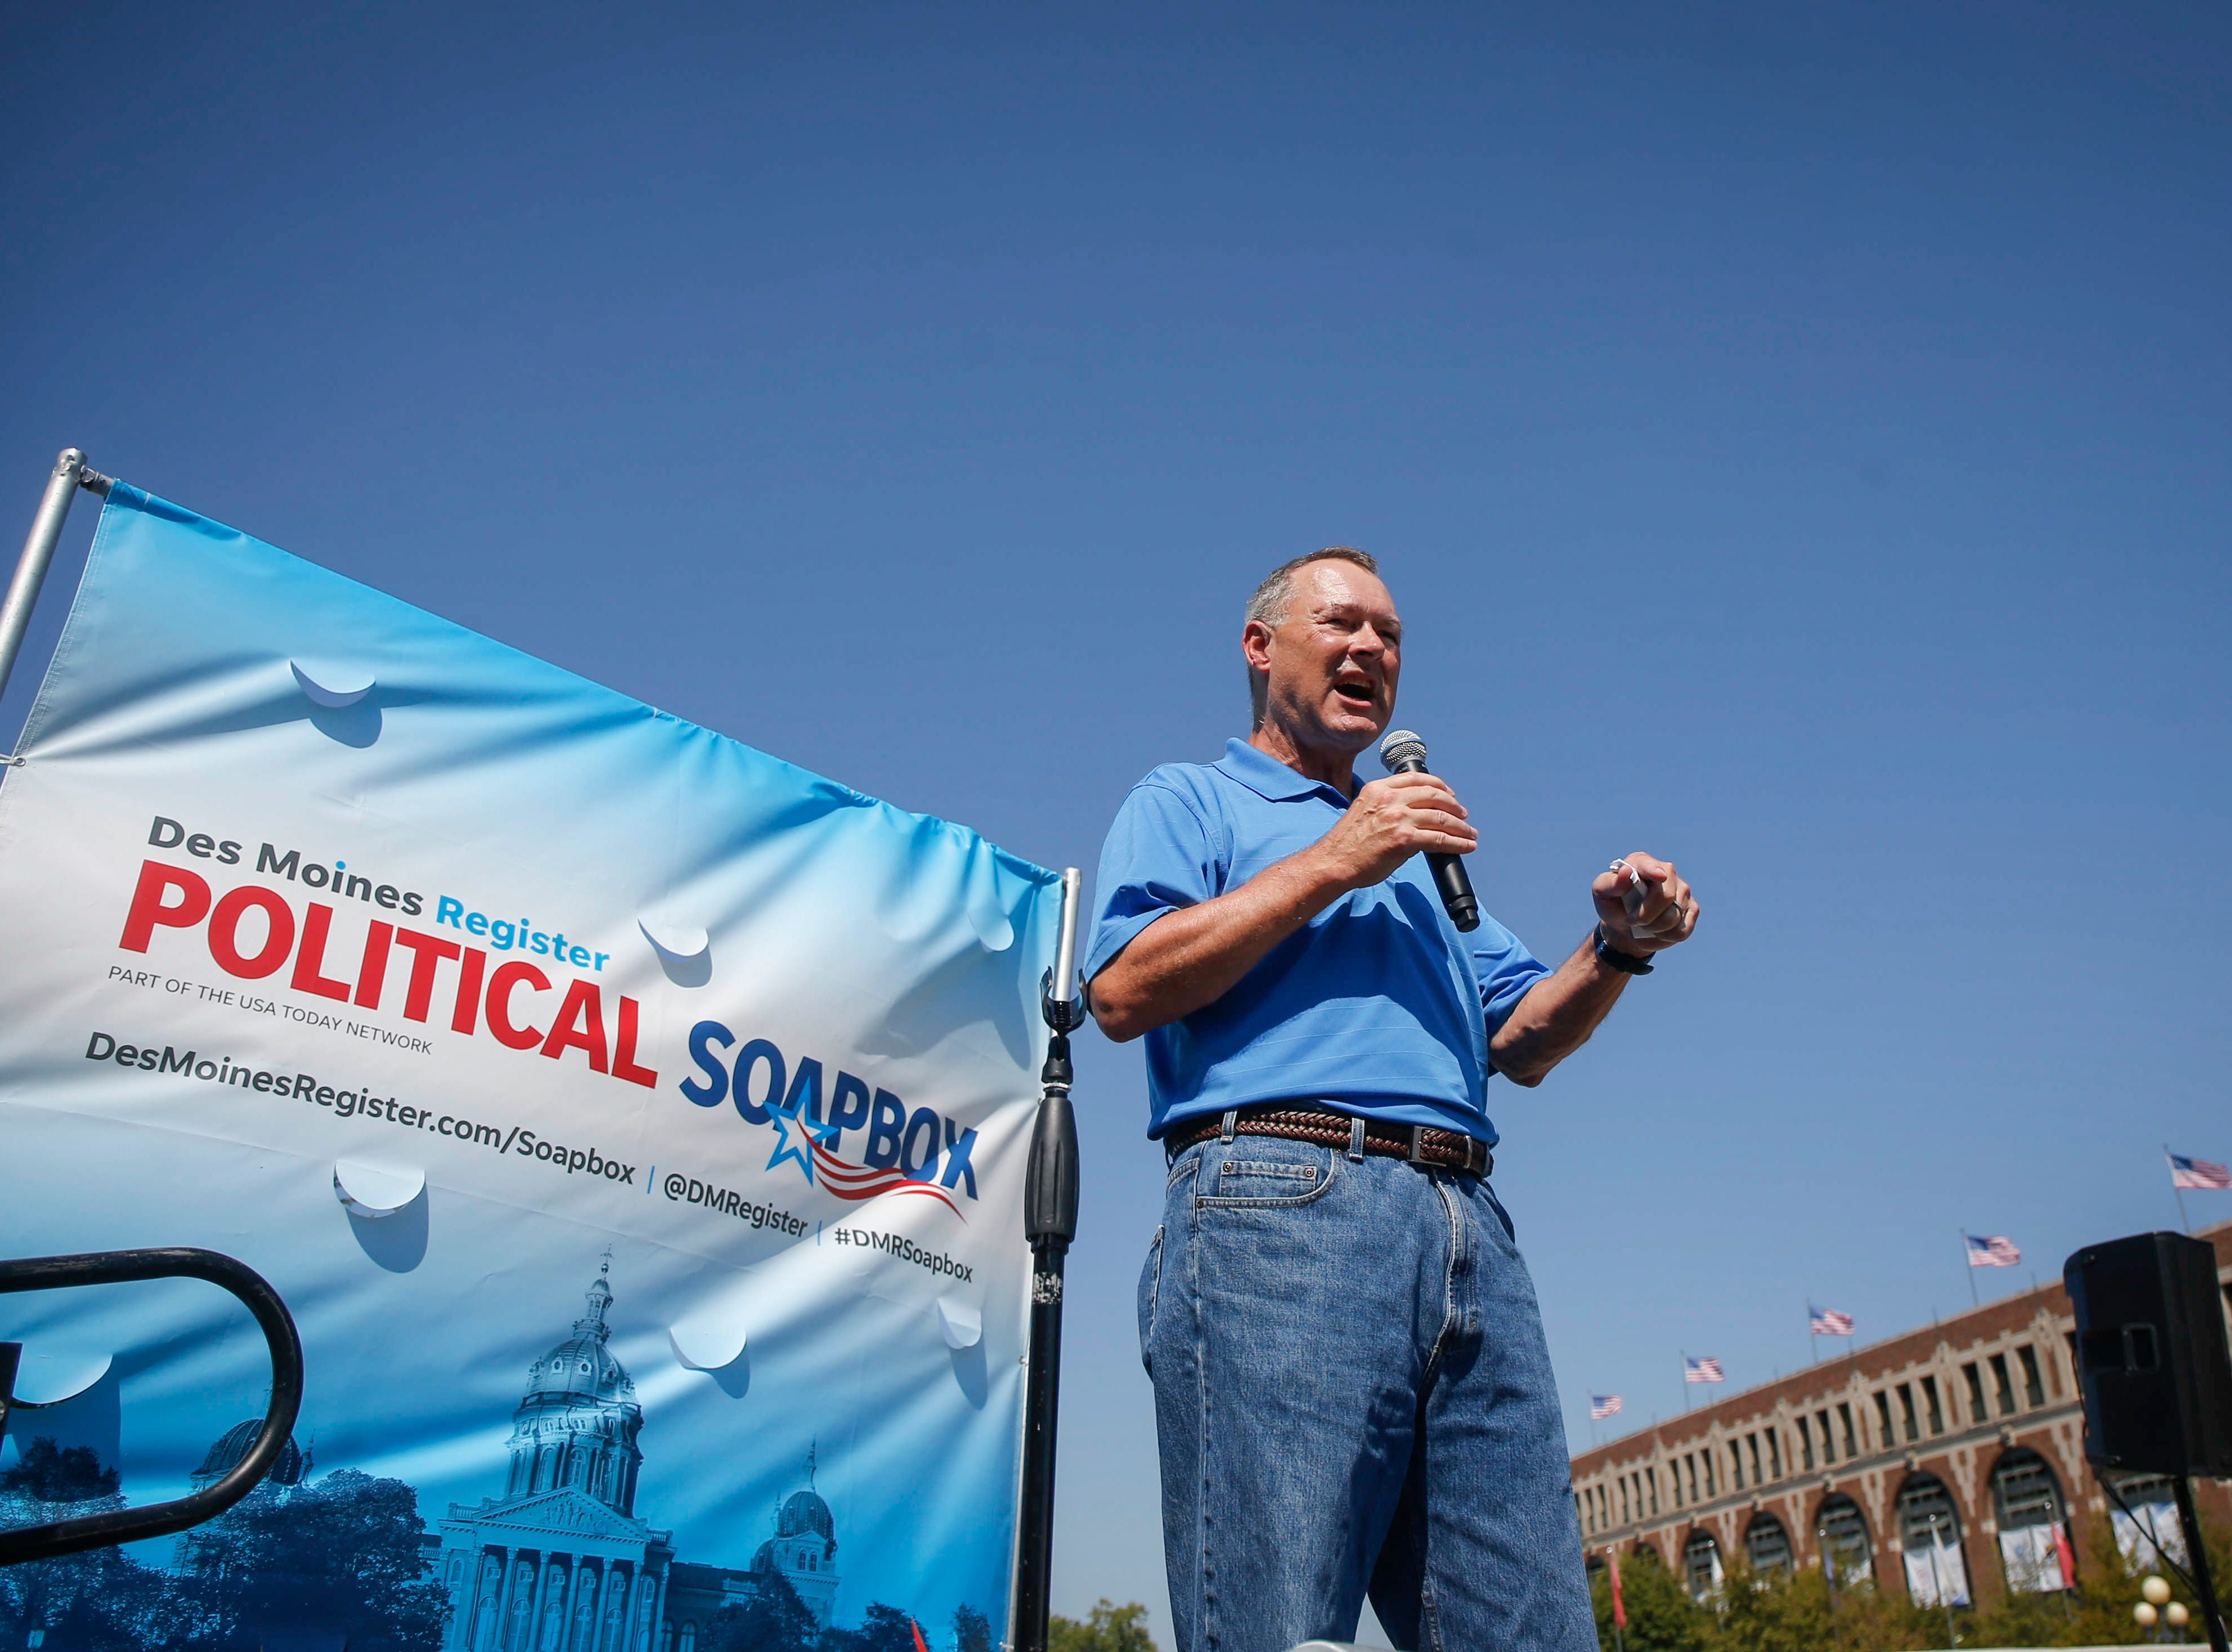 Iowa Treasurer Michael Fitzgerald speaks at the Des Moines Register Political Soapbox during the Iowa State Fair in Des Moine.